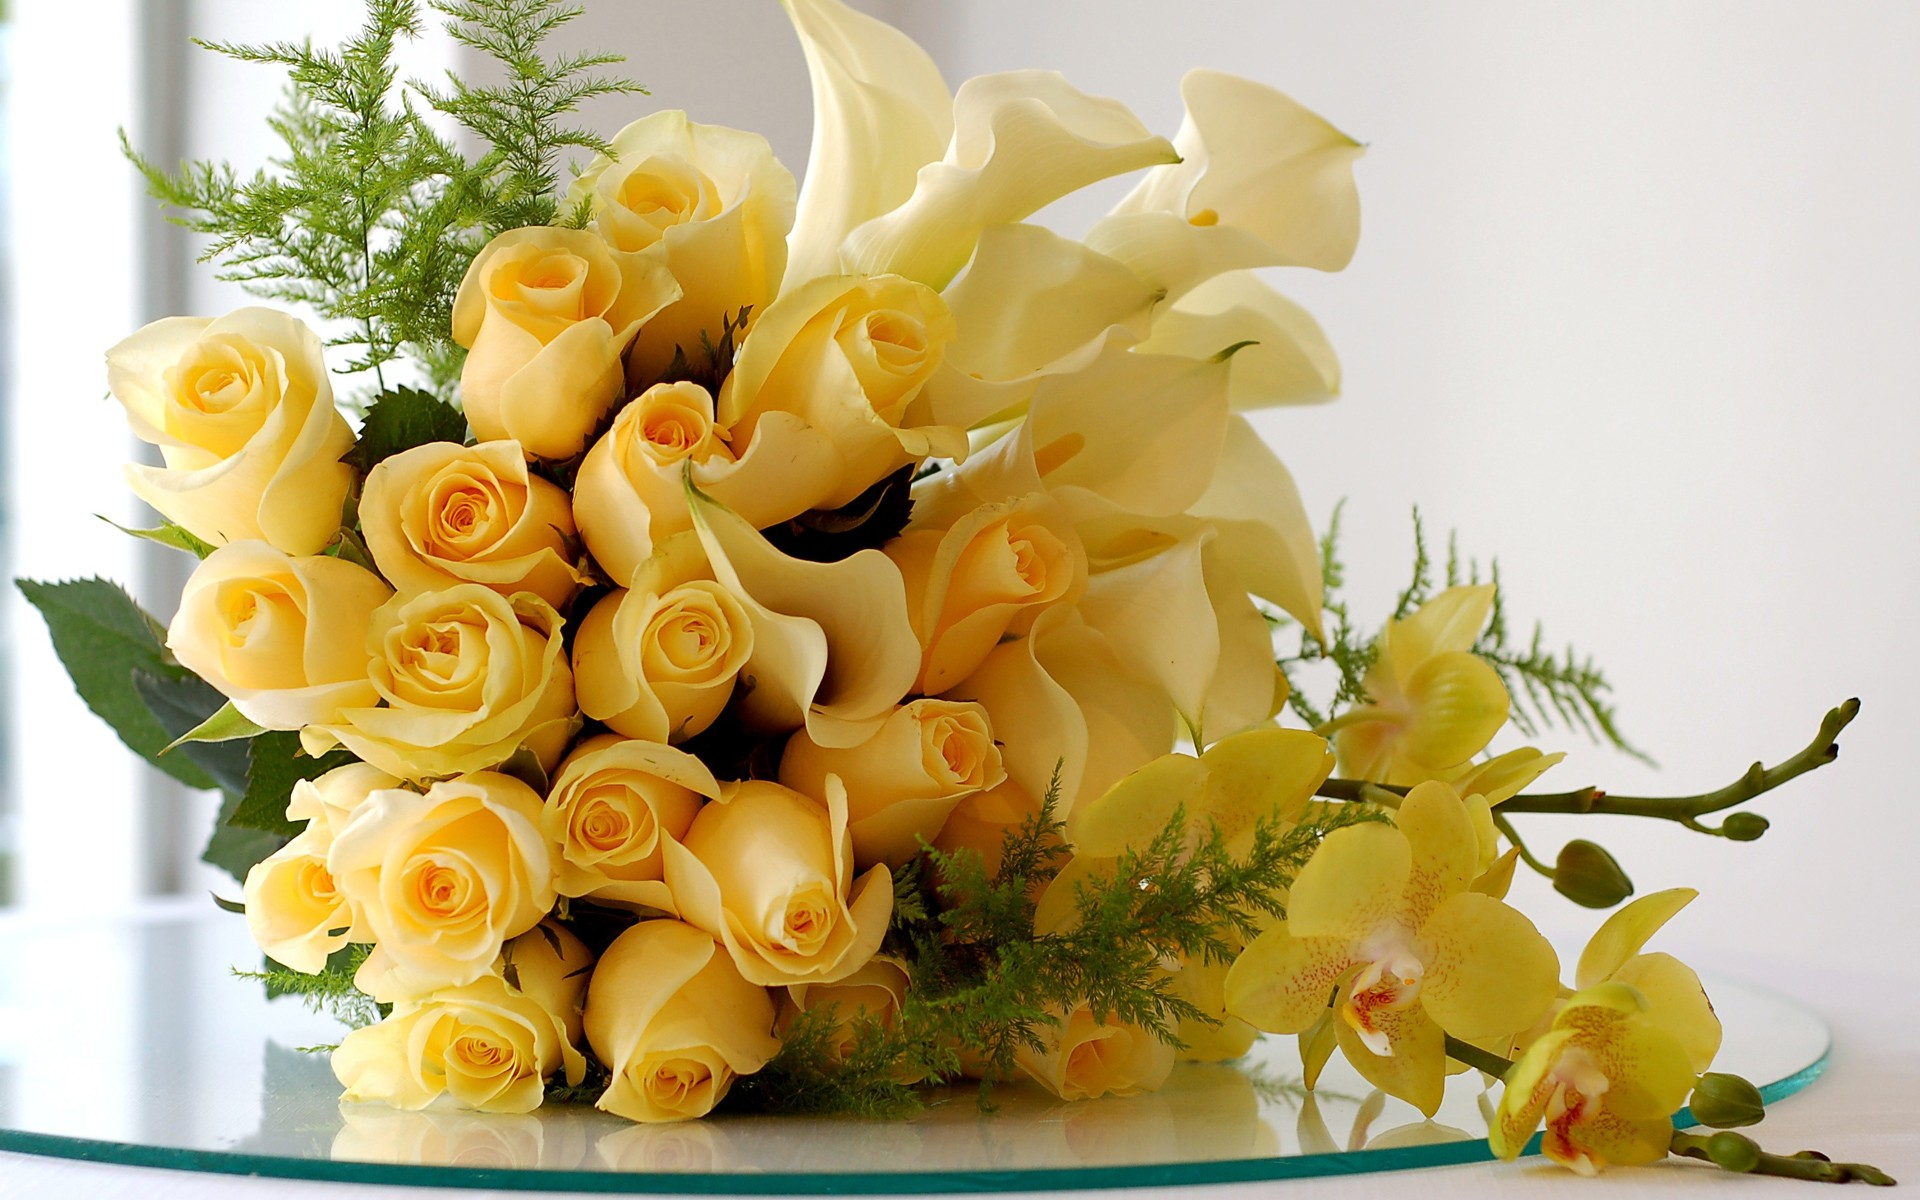 How To Take Care Of Flower Bouquets To Last Longer